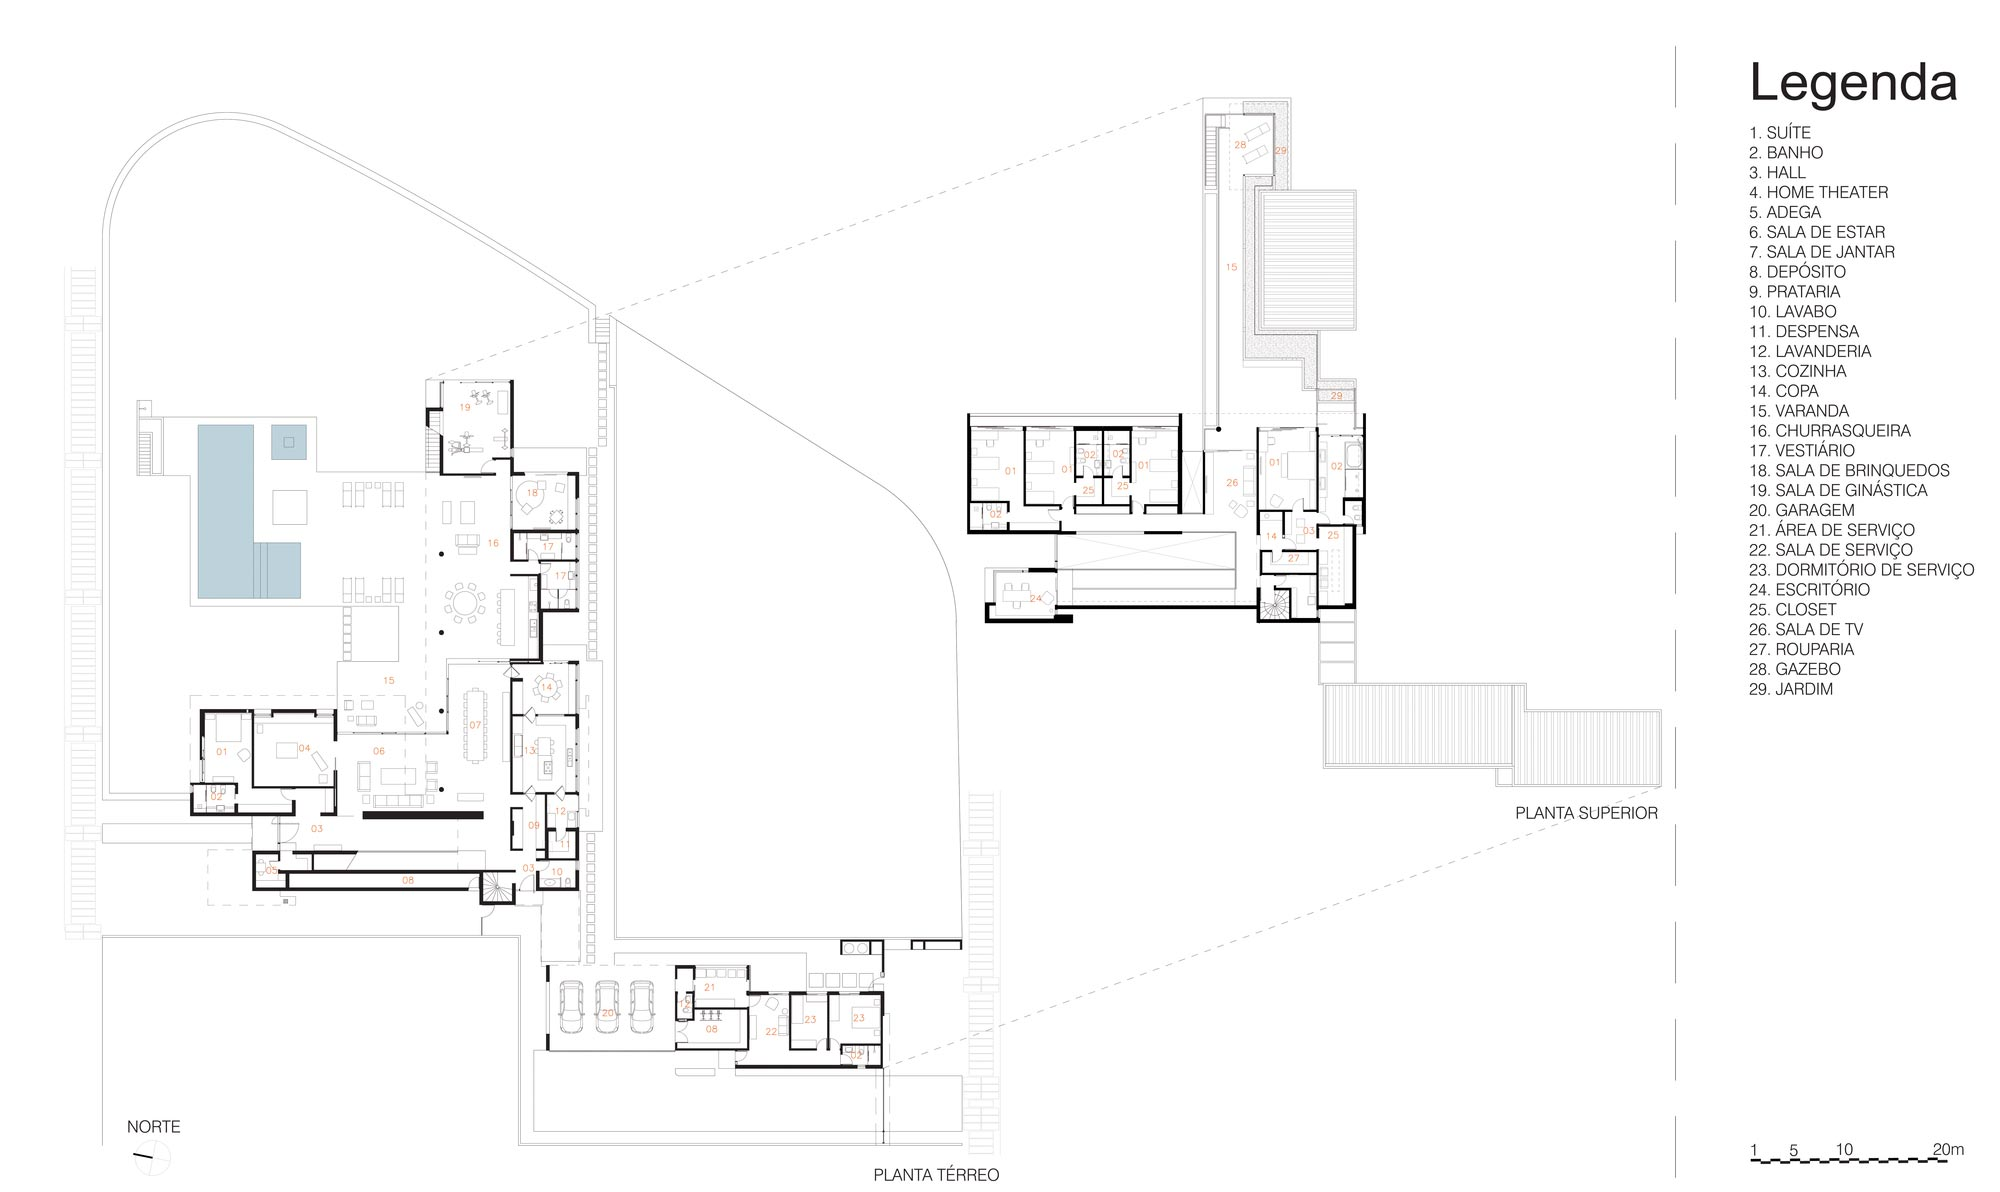 Floor Plans, FG Residence in Araraquara, Brazil